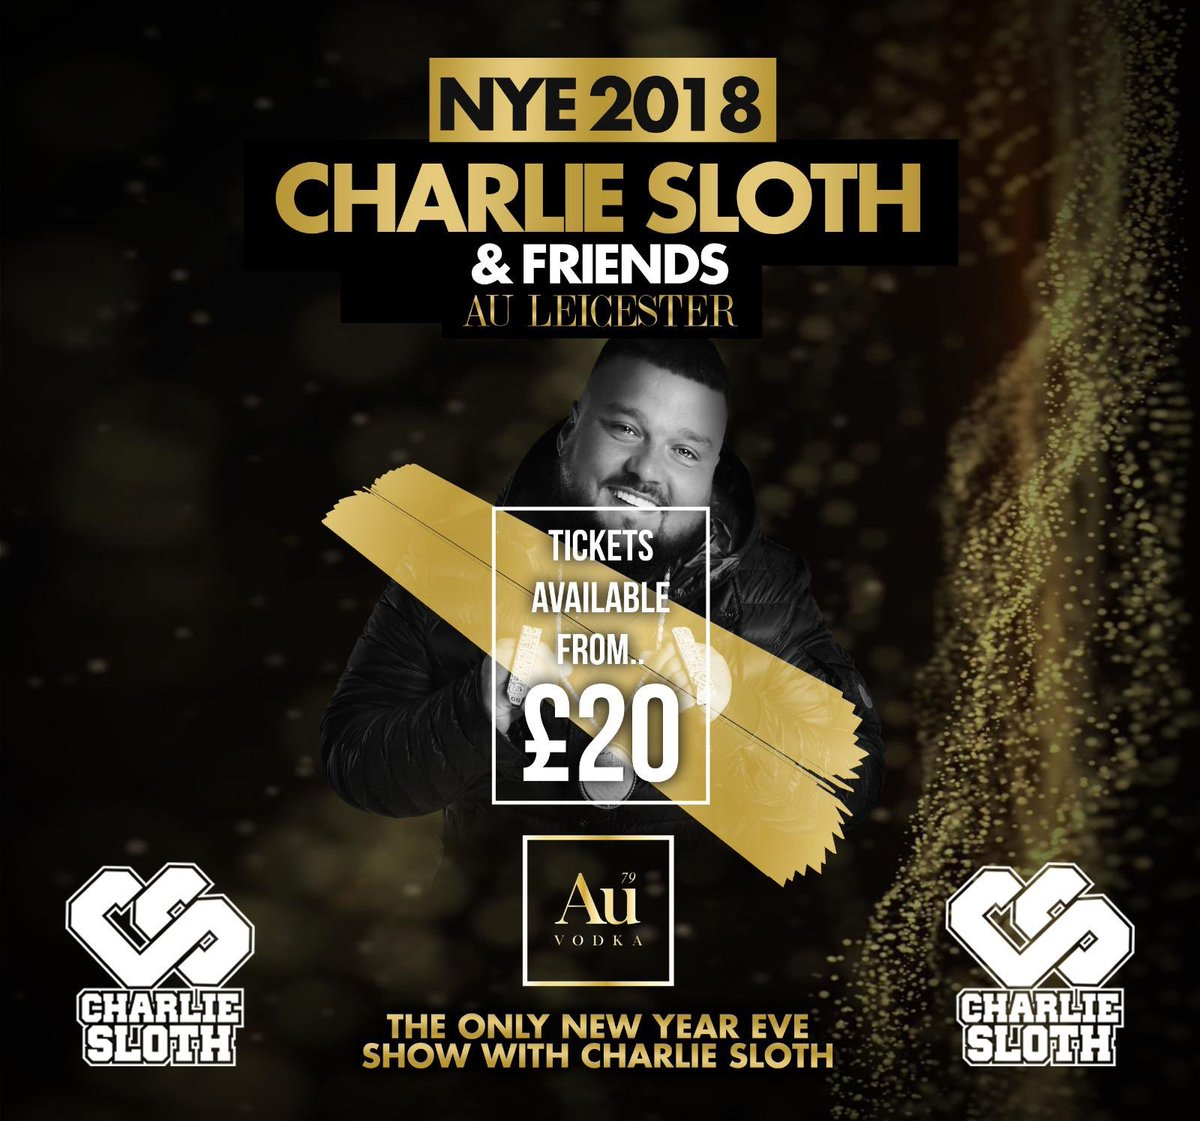 OI OI @CharlieSloth and friends for the biggest party of the year @auleicester This event will sell out so get your tickets and tables now. Message me for information.